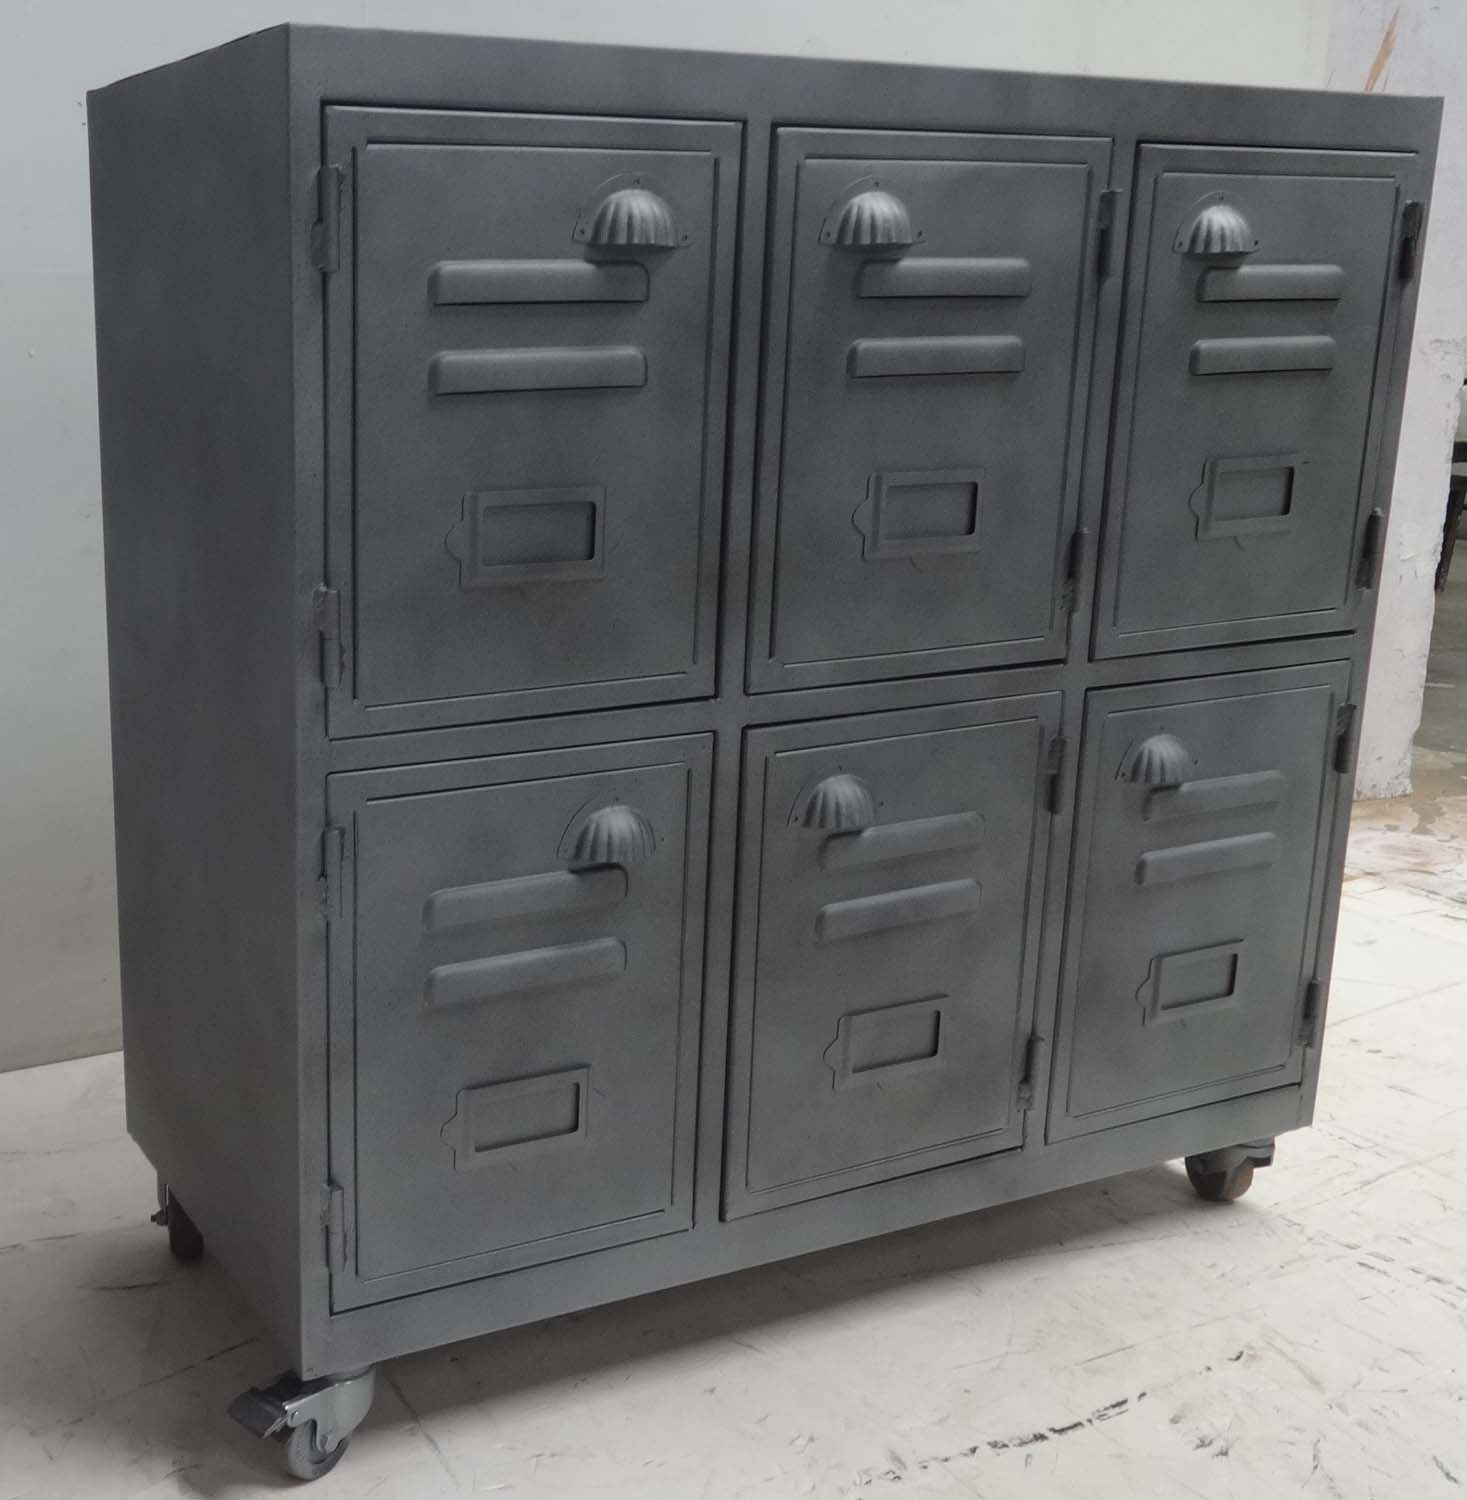 Vintage Industrial Metal Locker Cabinet. Unique Vintage Piece Of Furniture